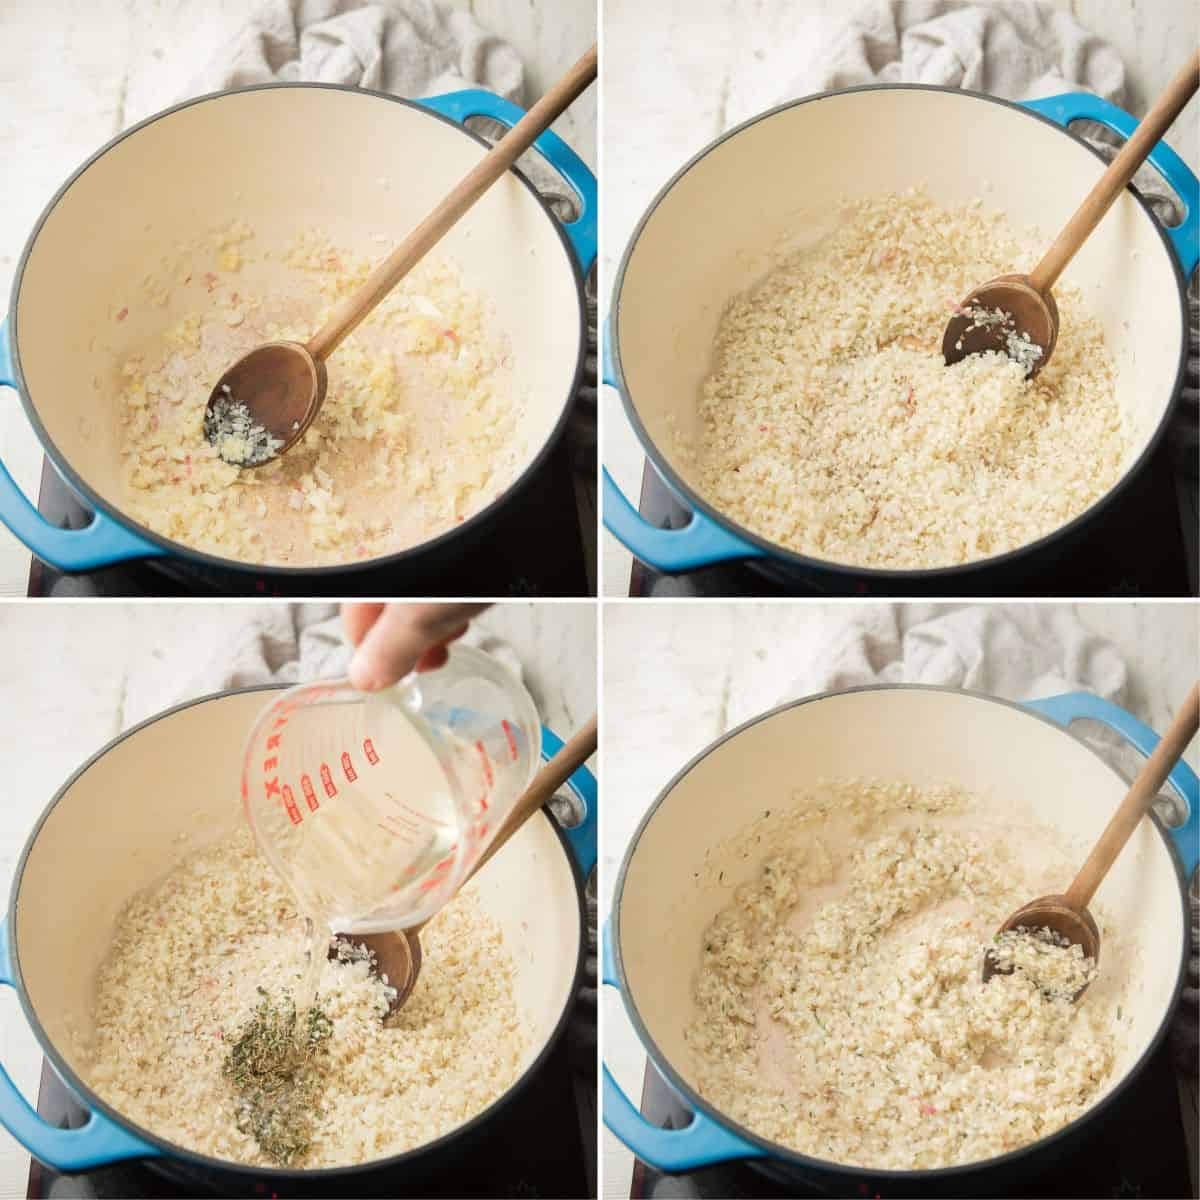 First 4 steps for making vegan risotto: cook armatics, toast rice, add wine and simmer.